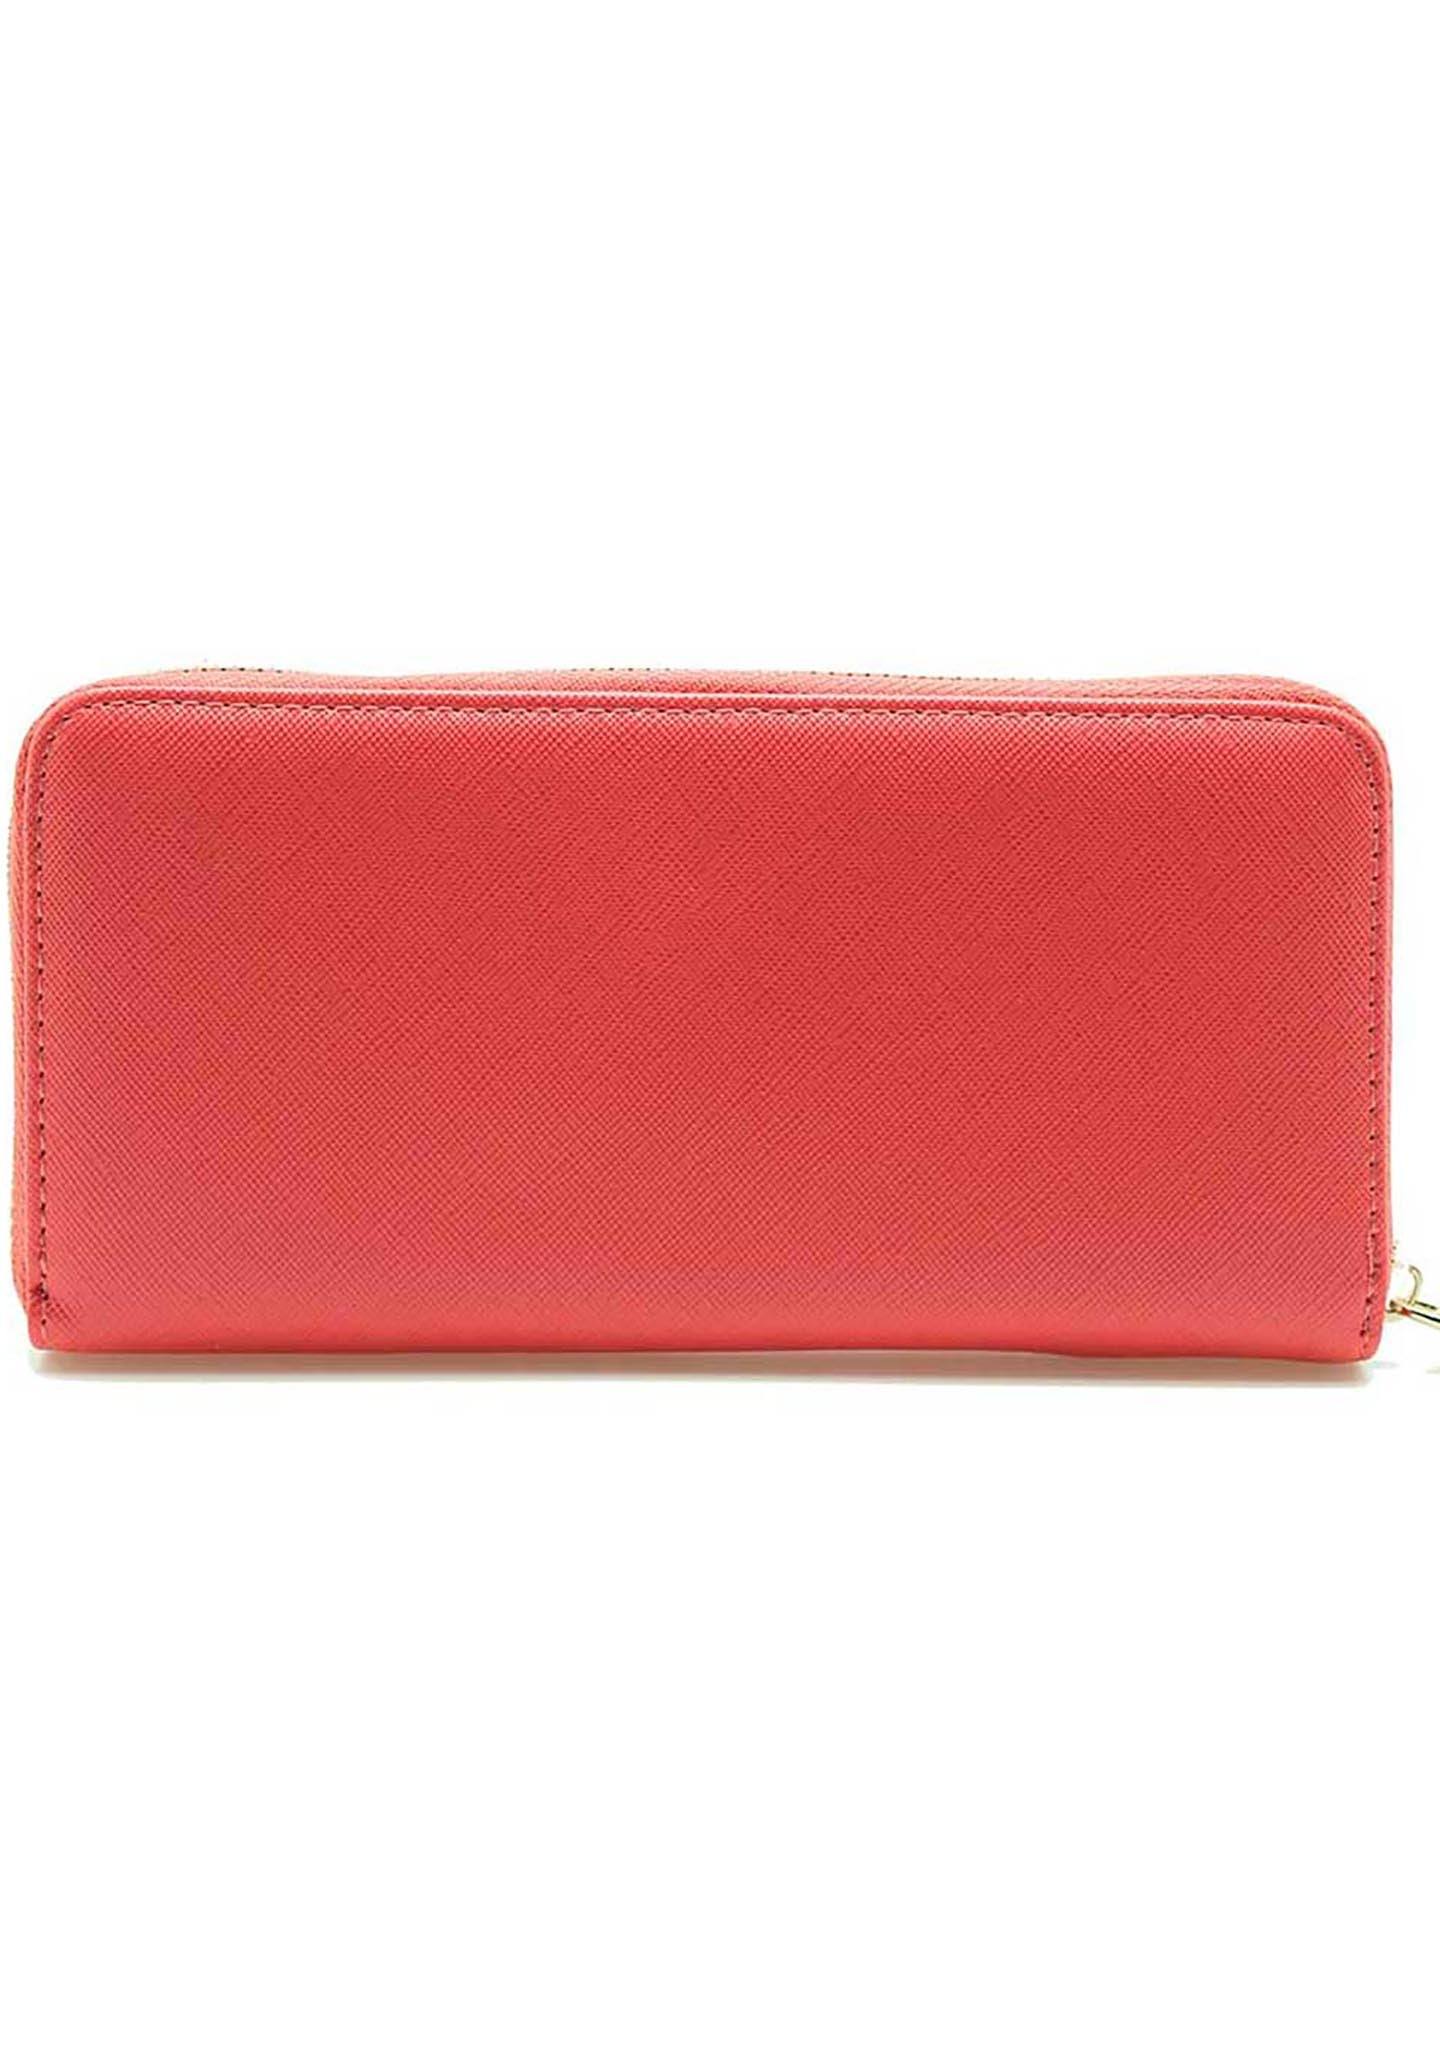 7 LUXE Sailon Moon Bow Zip Wallet in Coral